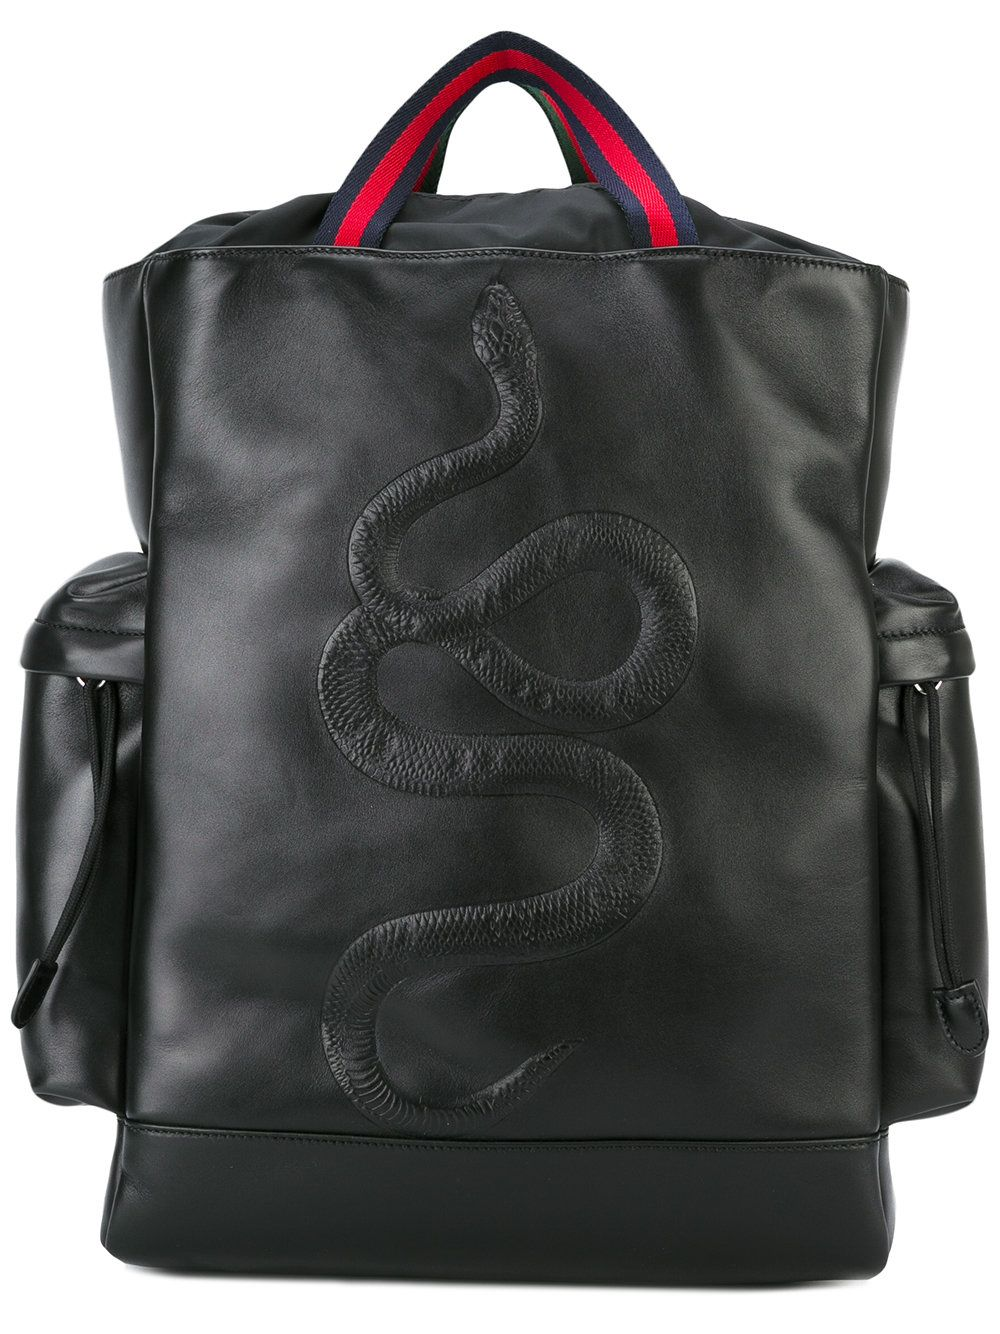 32d7a73031d6 Gucci kingsnake embroidered backpack | unusual backpacks in 2019 ...